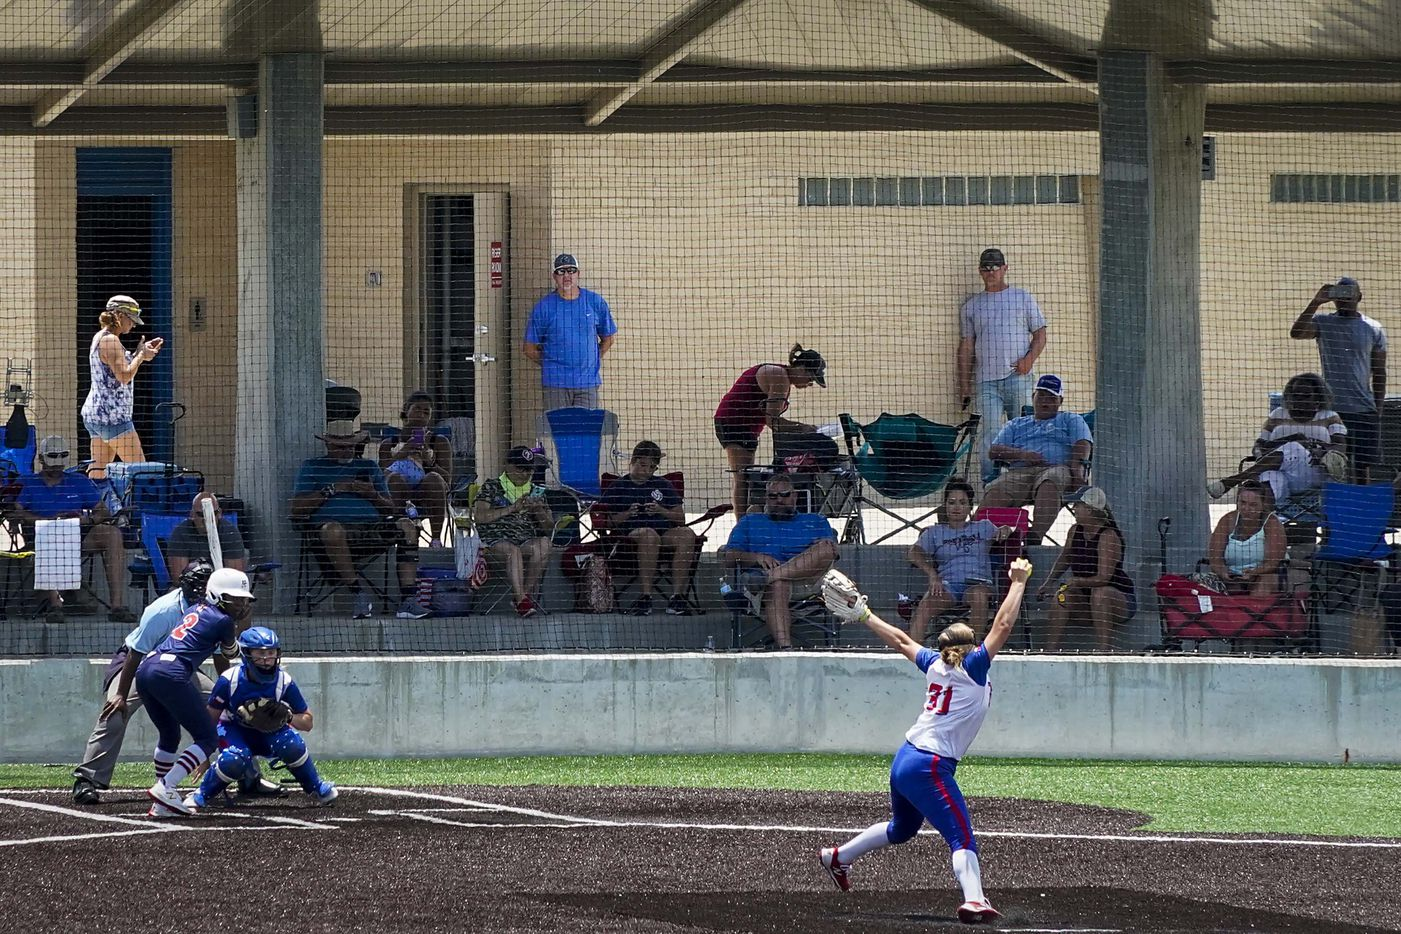 Fans watch a softball game between the Texas Glory 18U team (in white jerseys) and the American Freedom Gold Coleman 18U in the Triple Crown Texas State Tournament at Spirit Park on Monday, June 15, 2020, in Allen, Texas. (Smiley N. Pool/The Dallas Morning News)